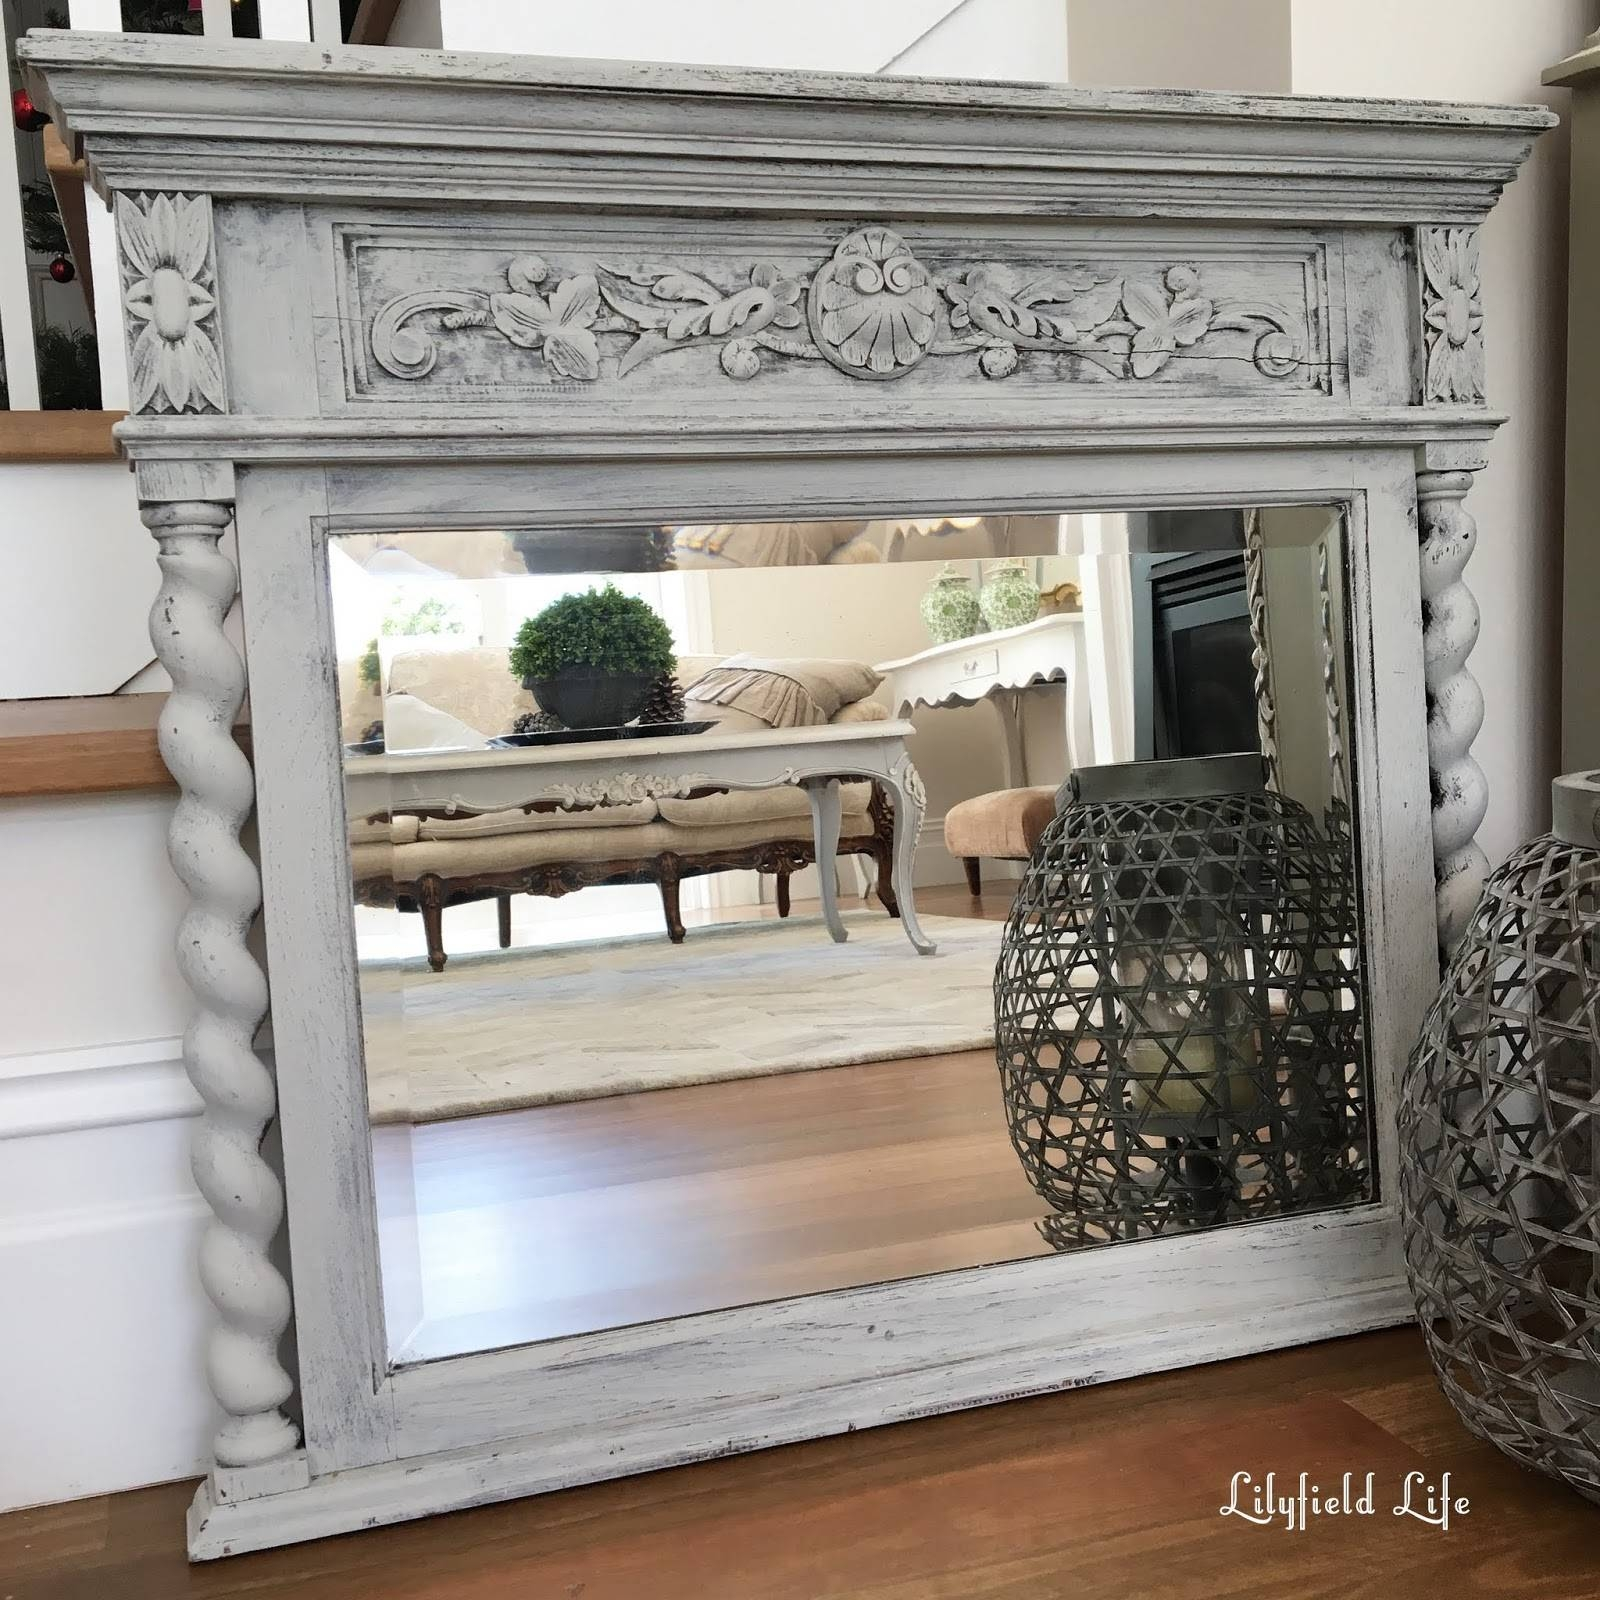 Lilyfield Life: Gorgeous Painted Vintage Mirrors inside Grey Vintage Mirrors (Image 17 of 25)